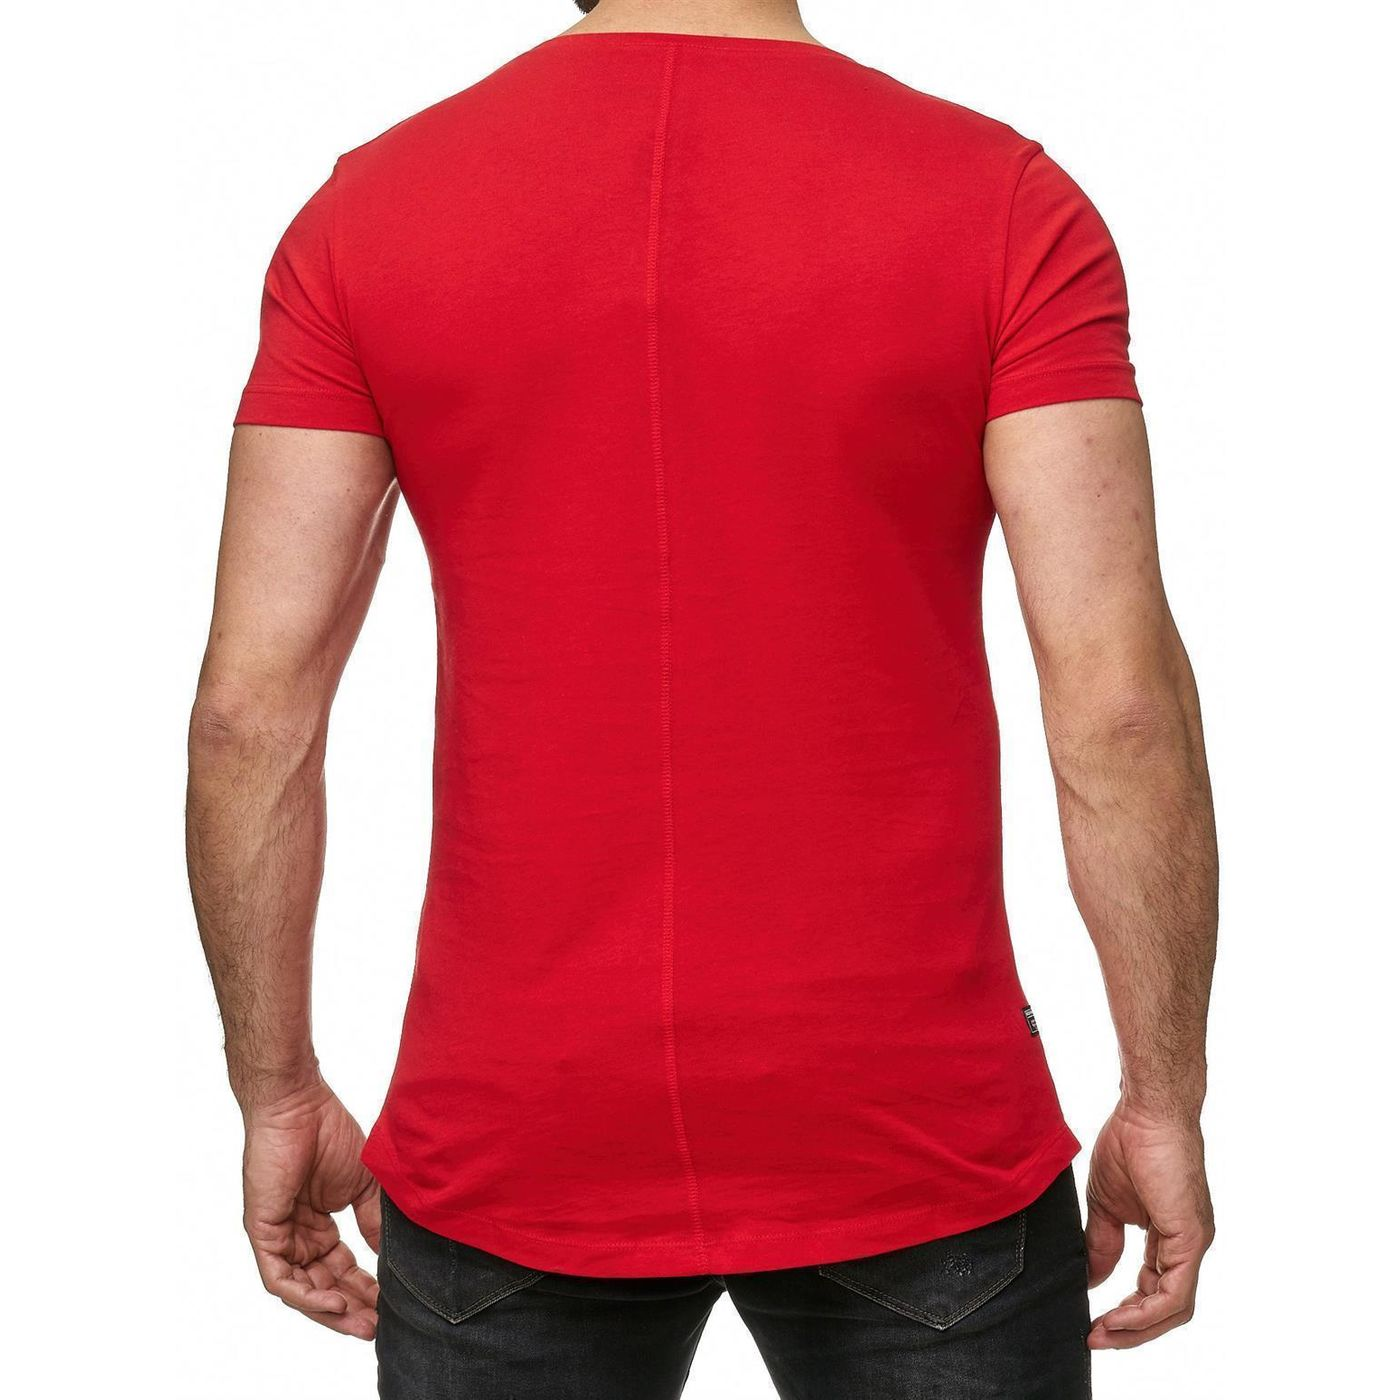 Find great deals on eBay for red oversized shirt/dress. Shop with confidence.